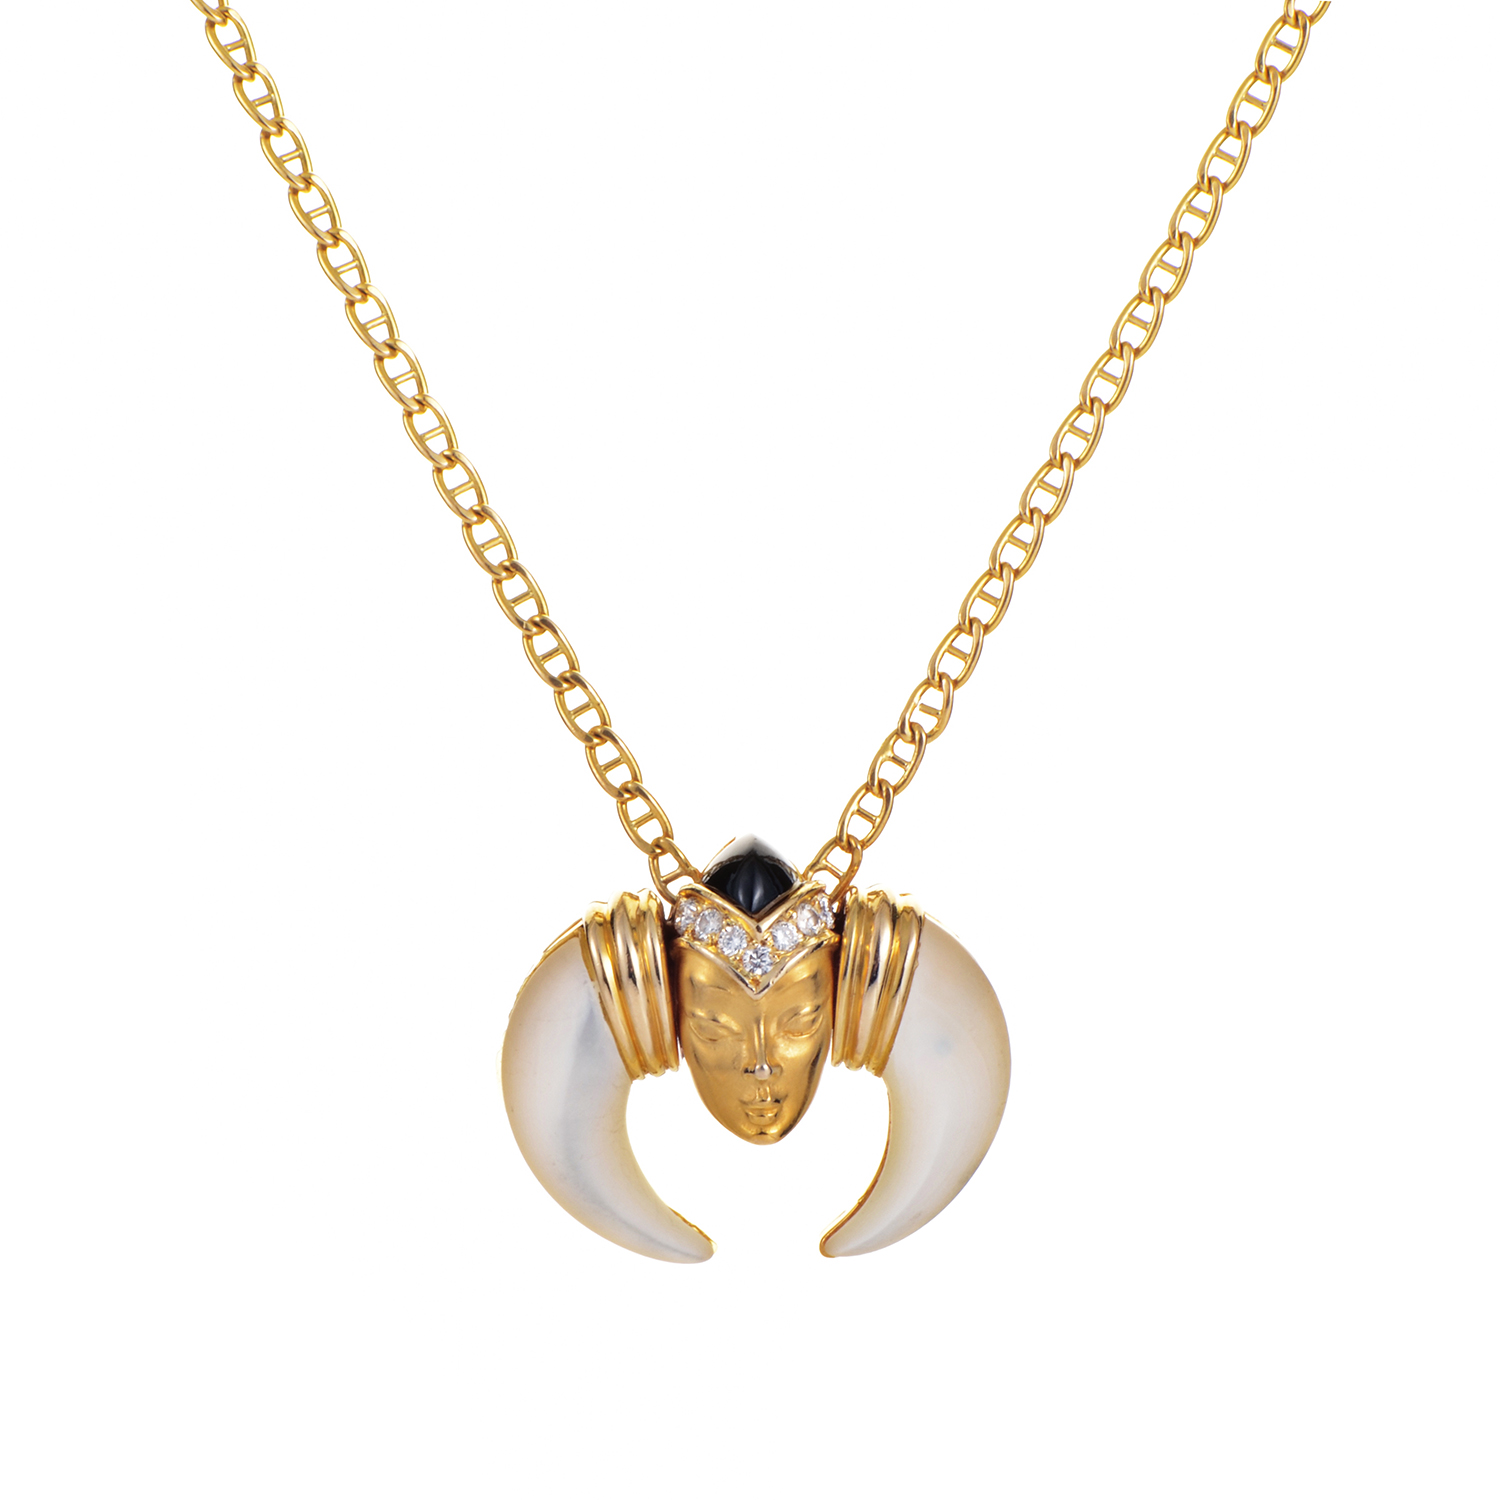 Carrera y Carrera 18K Yellow Gold Gemstone Pendant Necklace